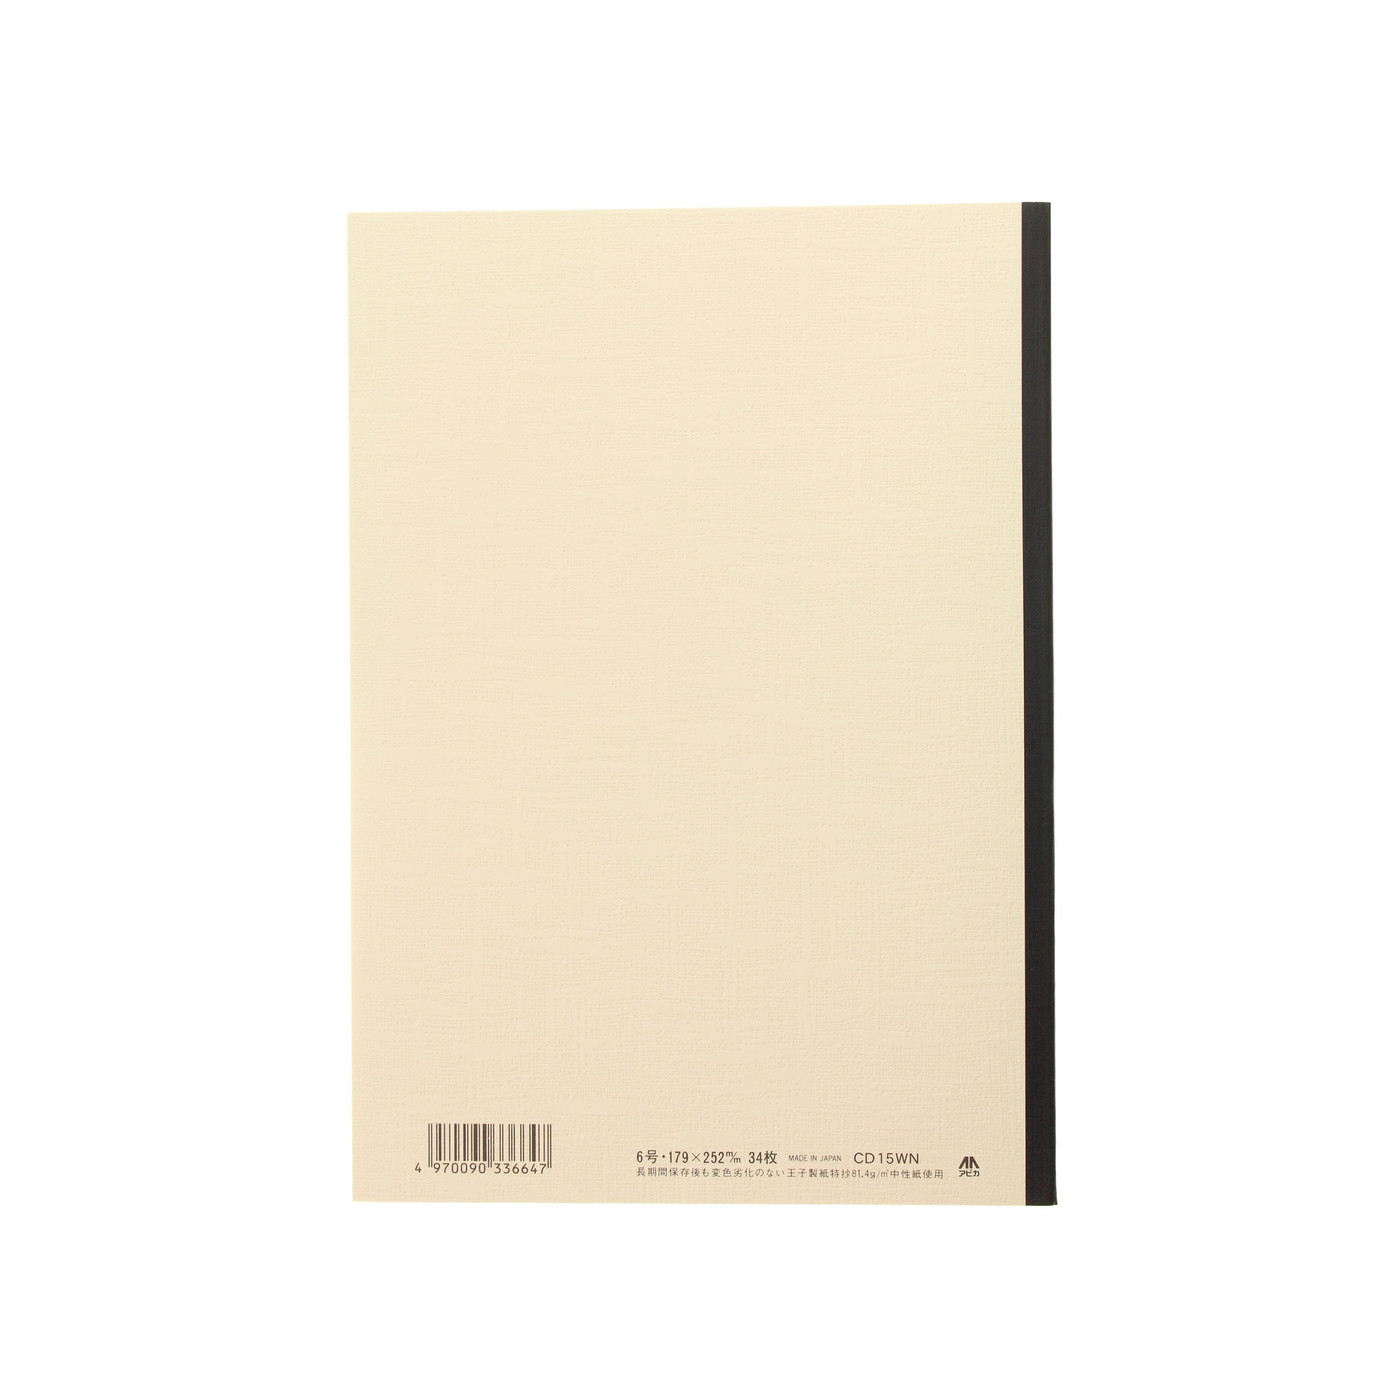 Apica notebook CD15 - B5 LINED